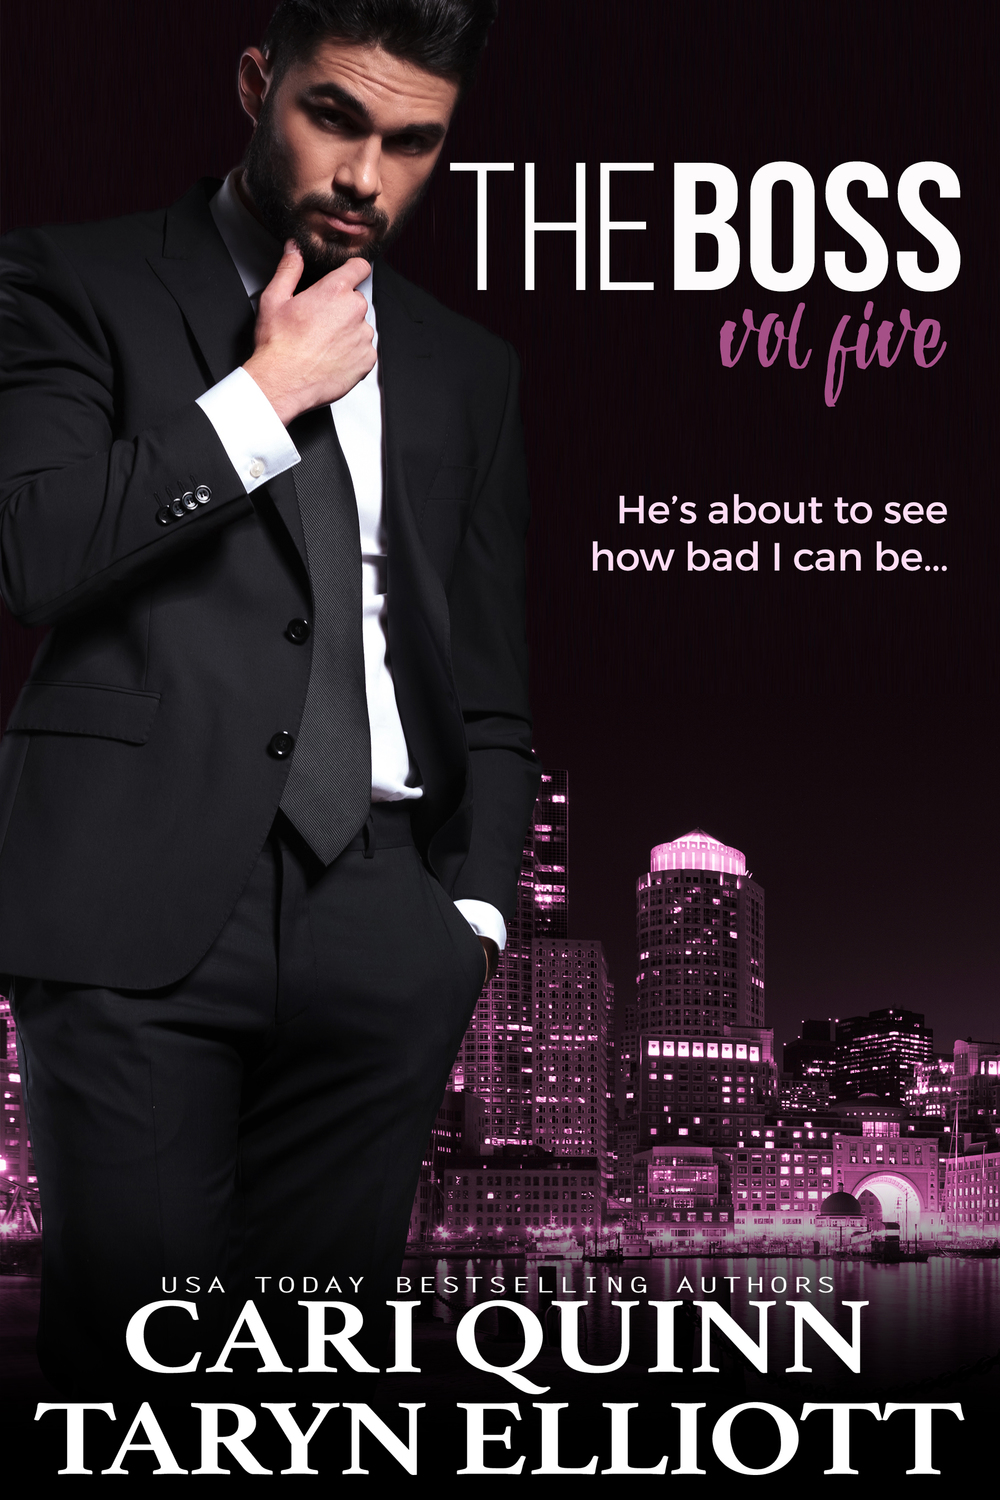 Taryn-Elliott-The-Boss-Vol.-5:-Hot-Billionaire-Romance-Serials-5.jpg